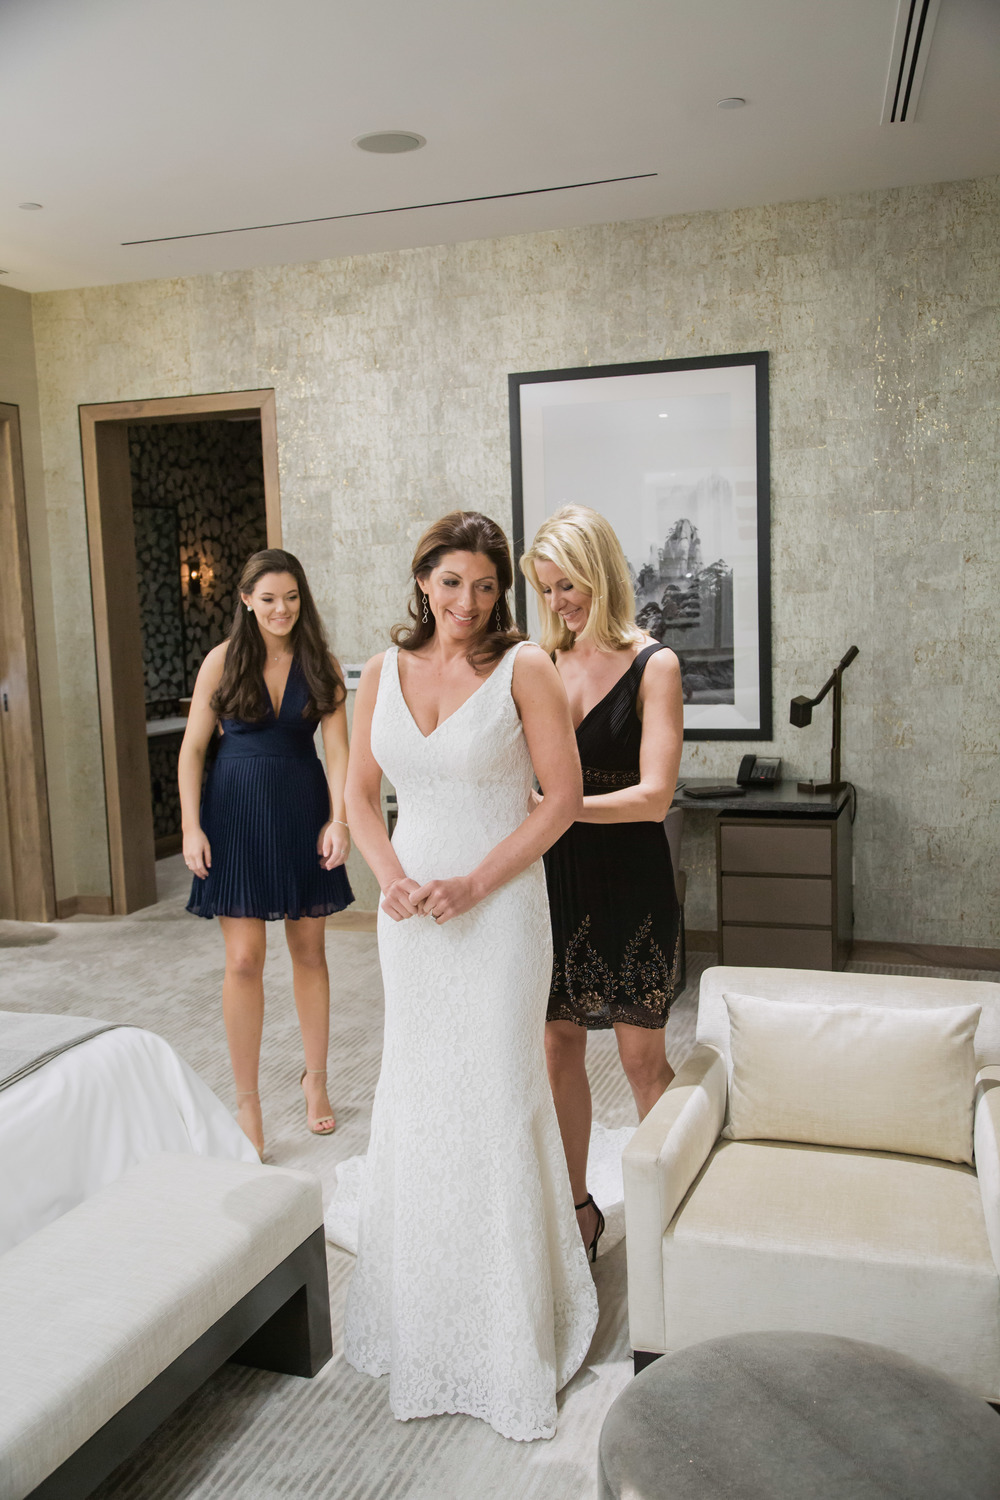 The bride dressed by her daughter and best friend.  Vendor Credits:  Wedding in the  Nobu Villa   |  Las Vegas Wedding Planner  Andrea Eppolito    |  Photography by  Adam Frazier   |  Videography by  Pure Light Creative   |  Floral and Decor by  Destinations by Design   |  Lighting by LED Unplugged  |  Music by  DJ Mike Fox